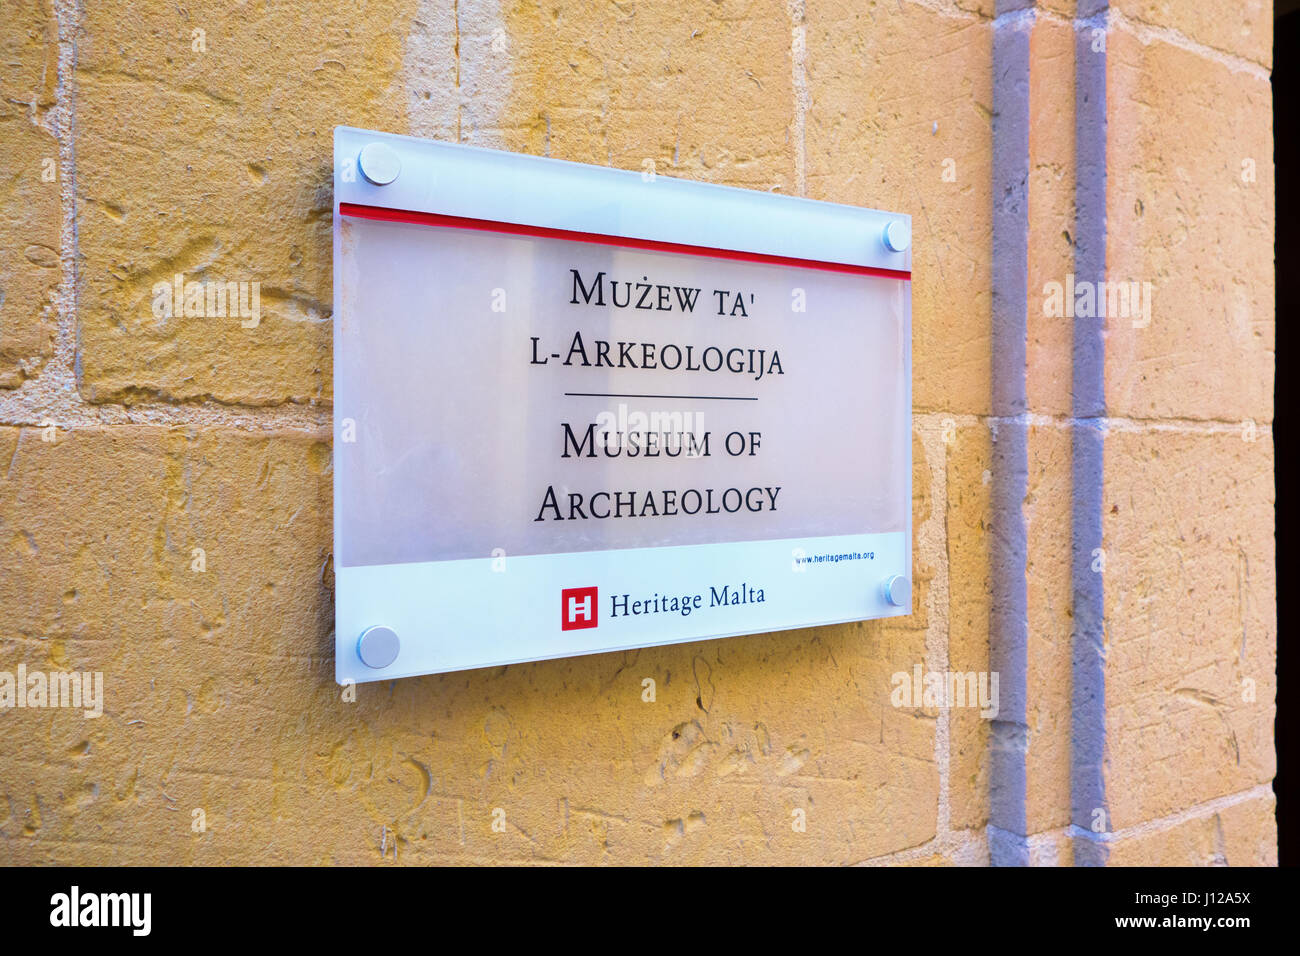 The National Museum of Archaeology sign, Auberge de Provence, in Republic Street, Valletta, Malta, Europe - Stock Image